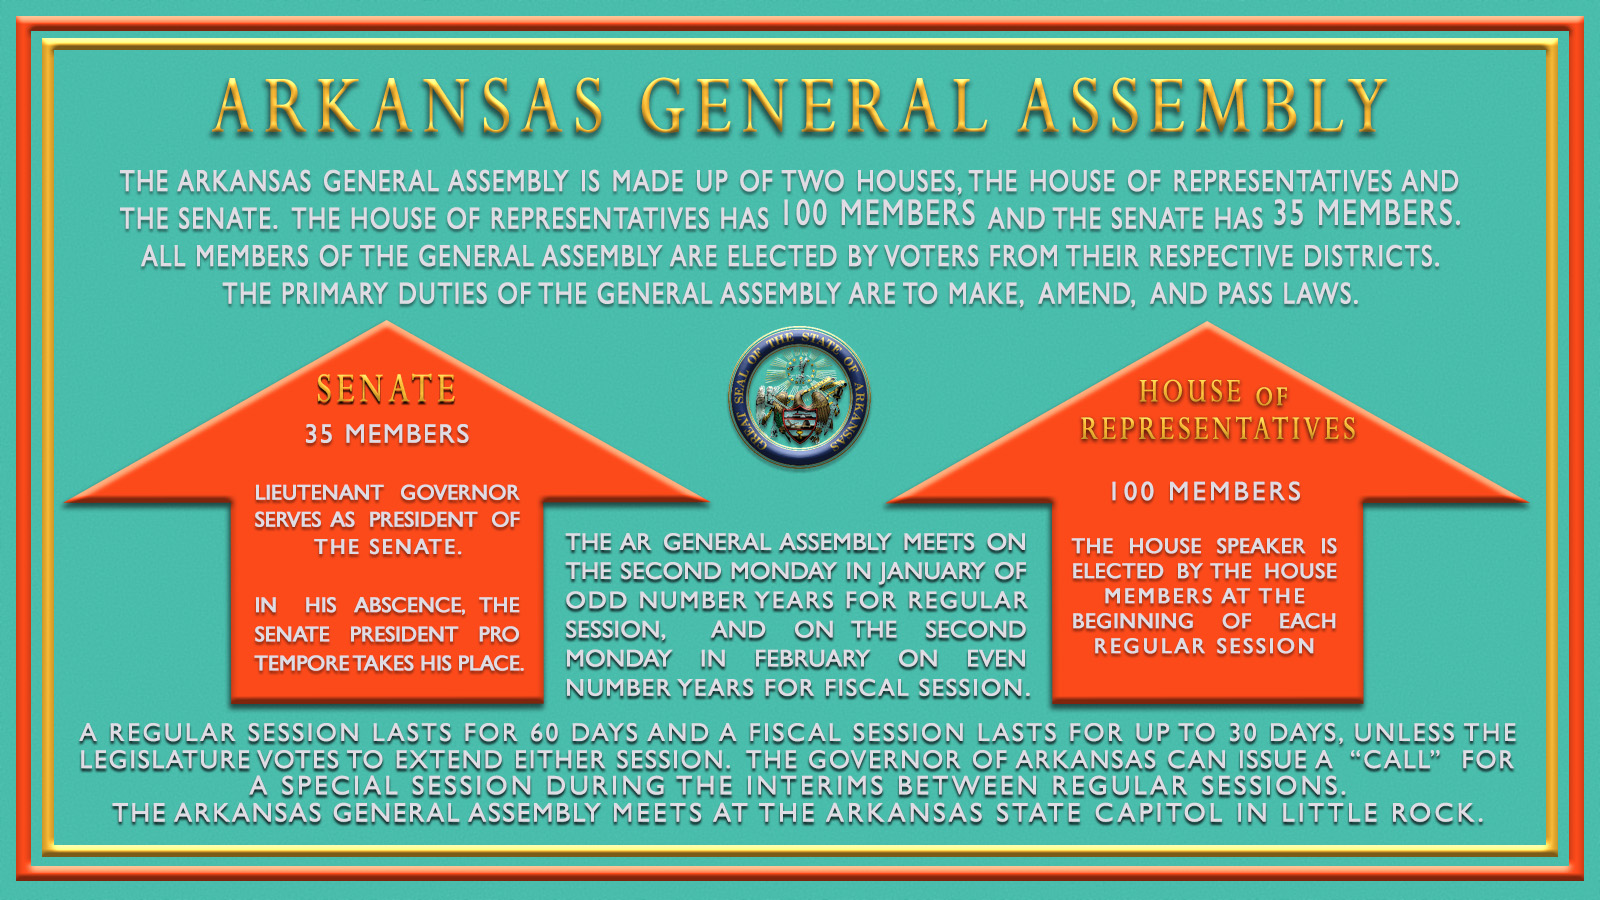 About the Arkansas General Assembly